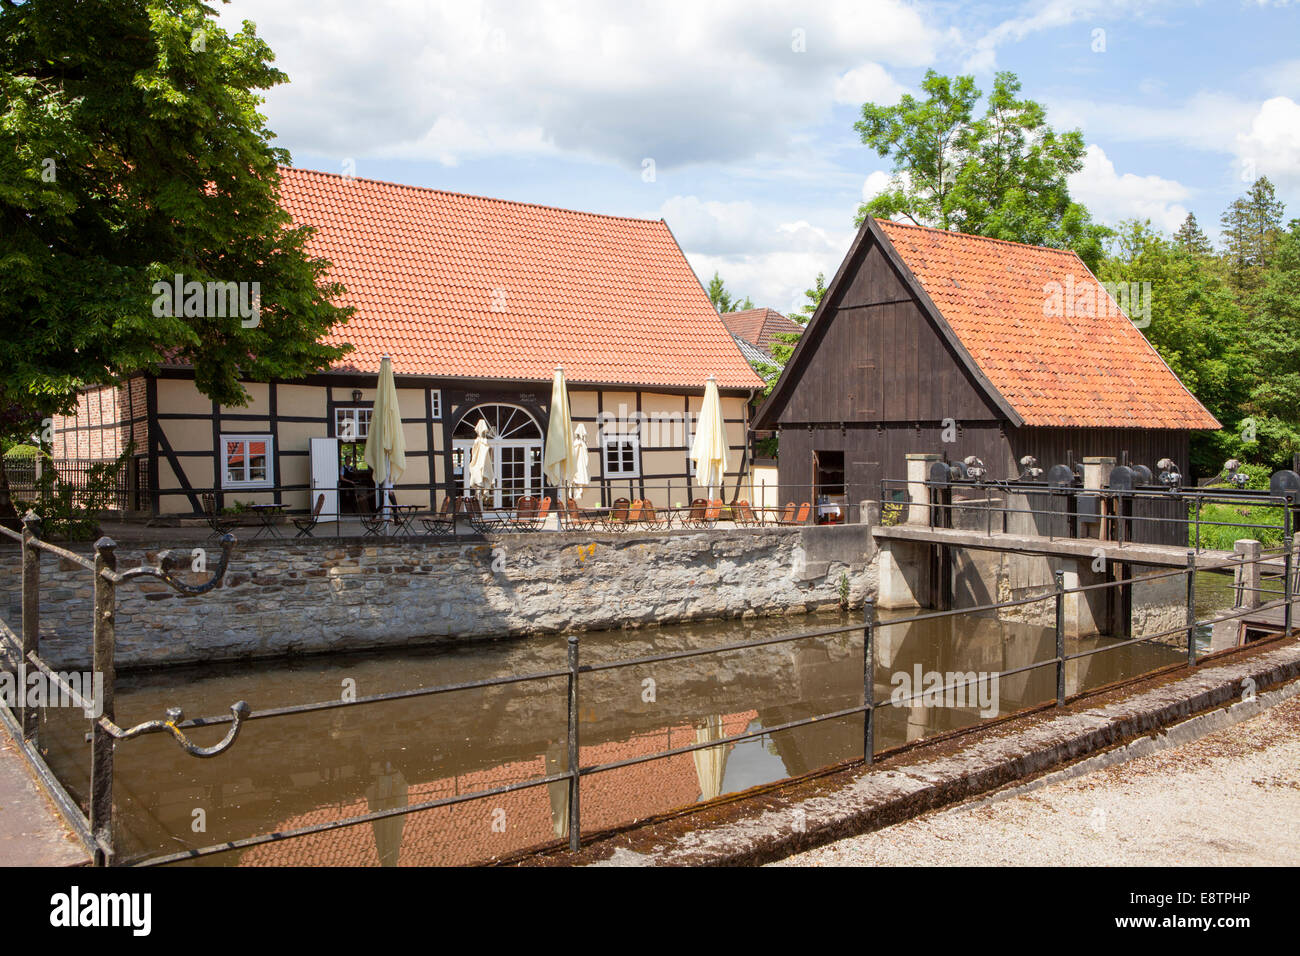 Water mill, river Ems, Rheda Castle, Rheda-Wiedenbrueck, Muensterland region, North Rhine-Westphalia, Germany, Europe - Stock Image